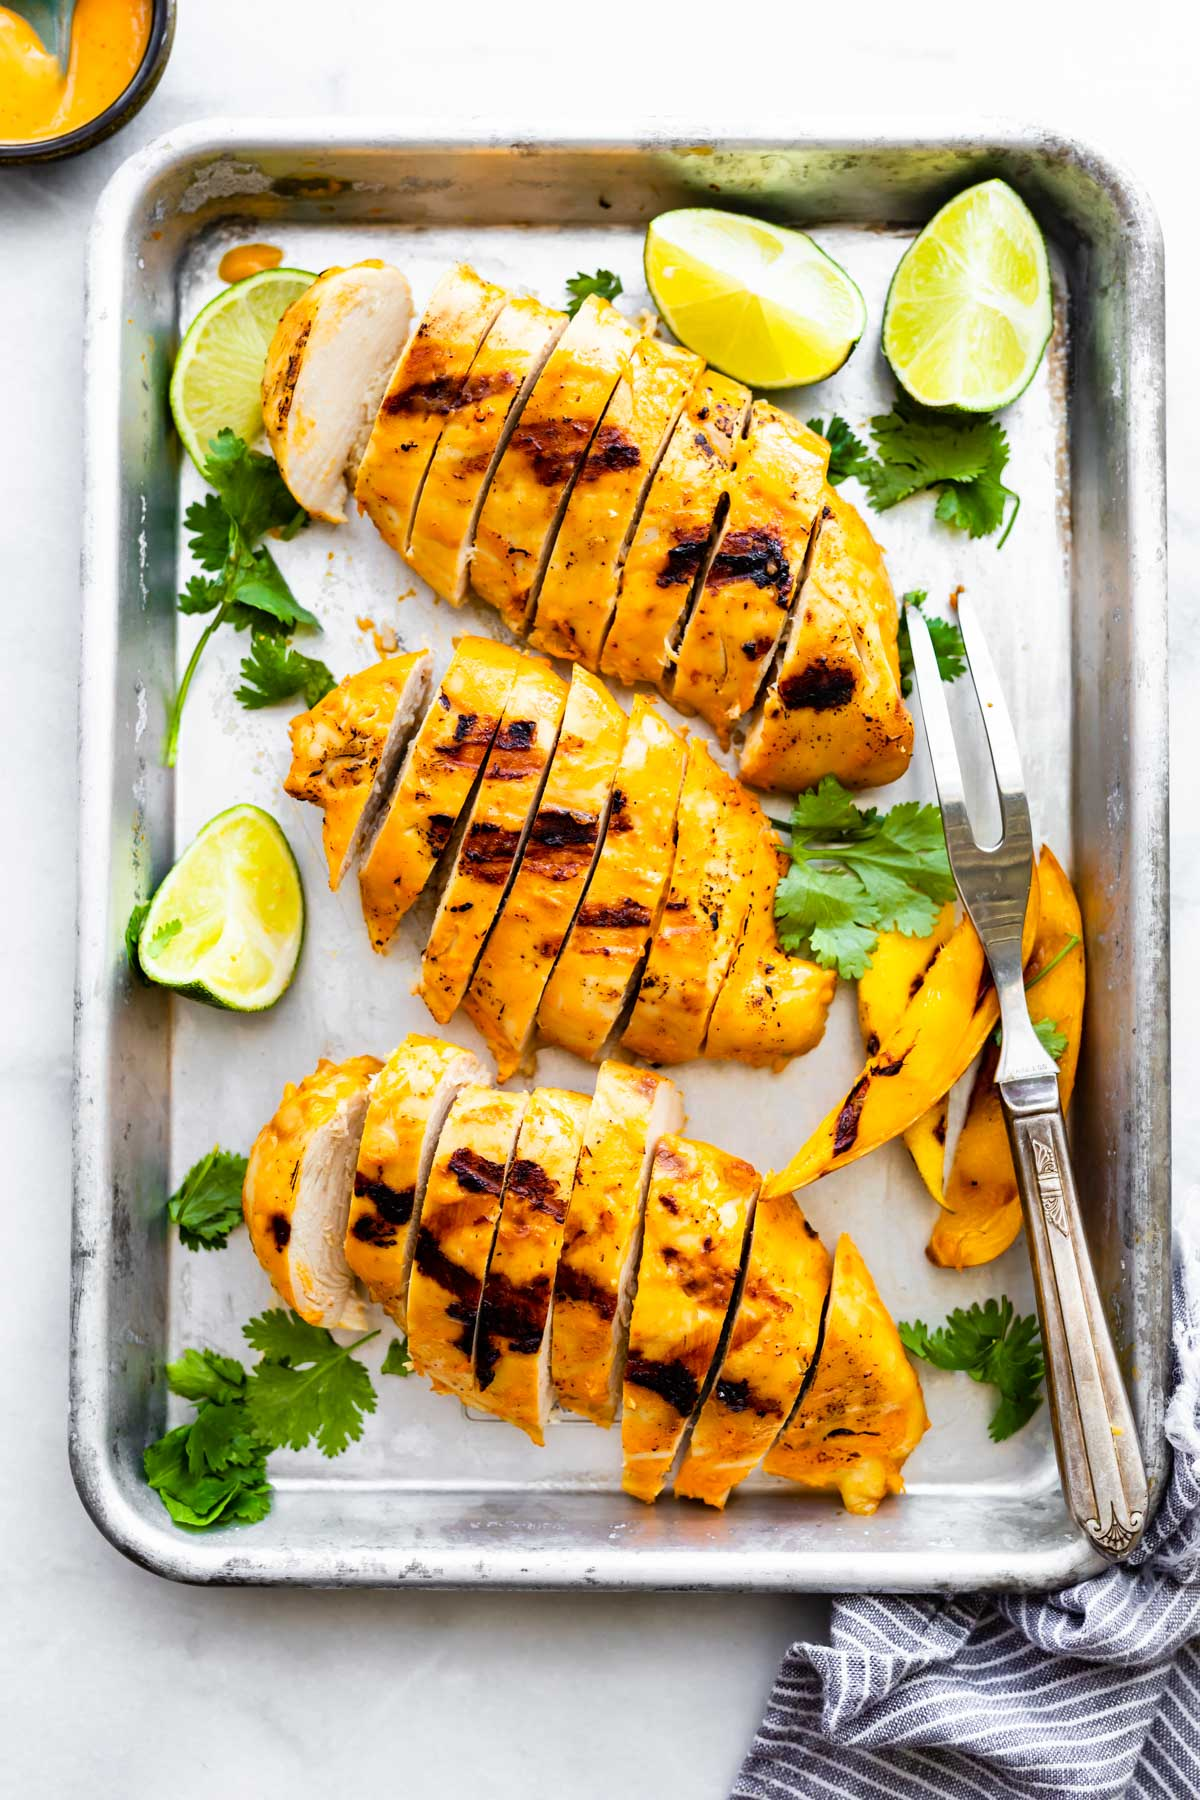 overhead photo: 3 grilled chicken breasts, cut into slices, arranged on metal sheet pan